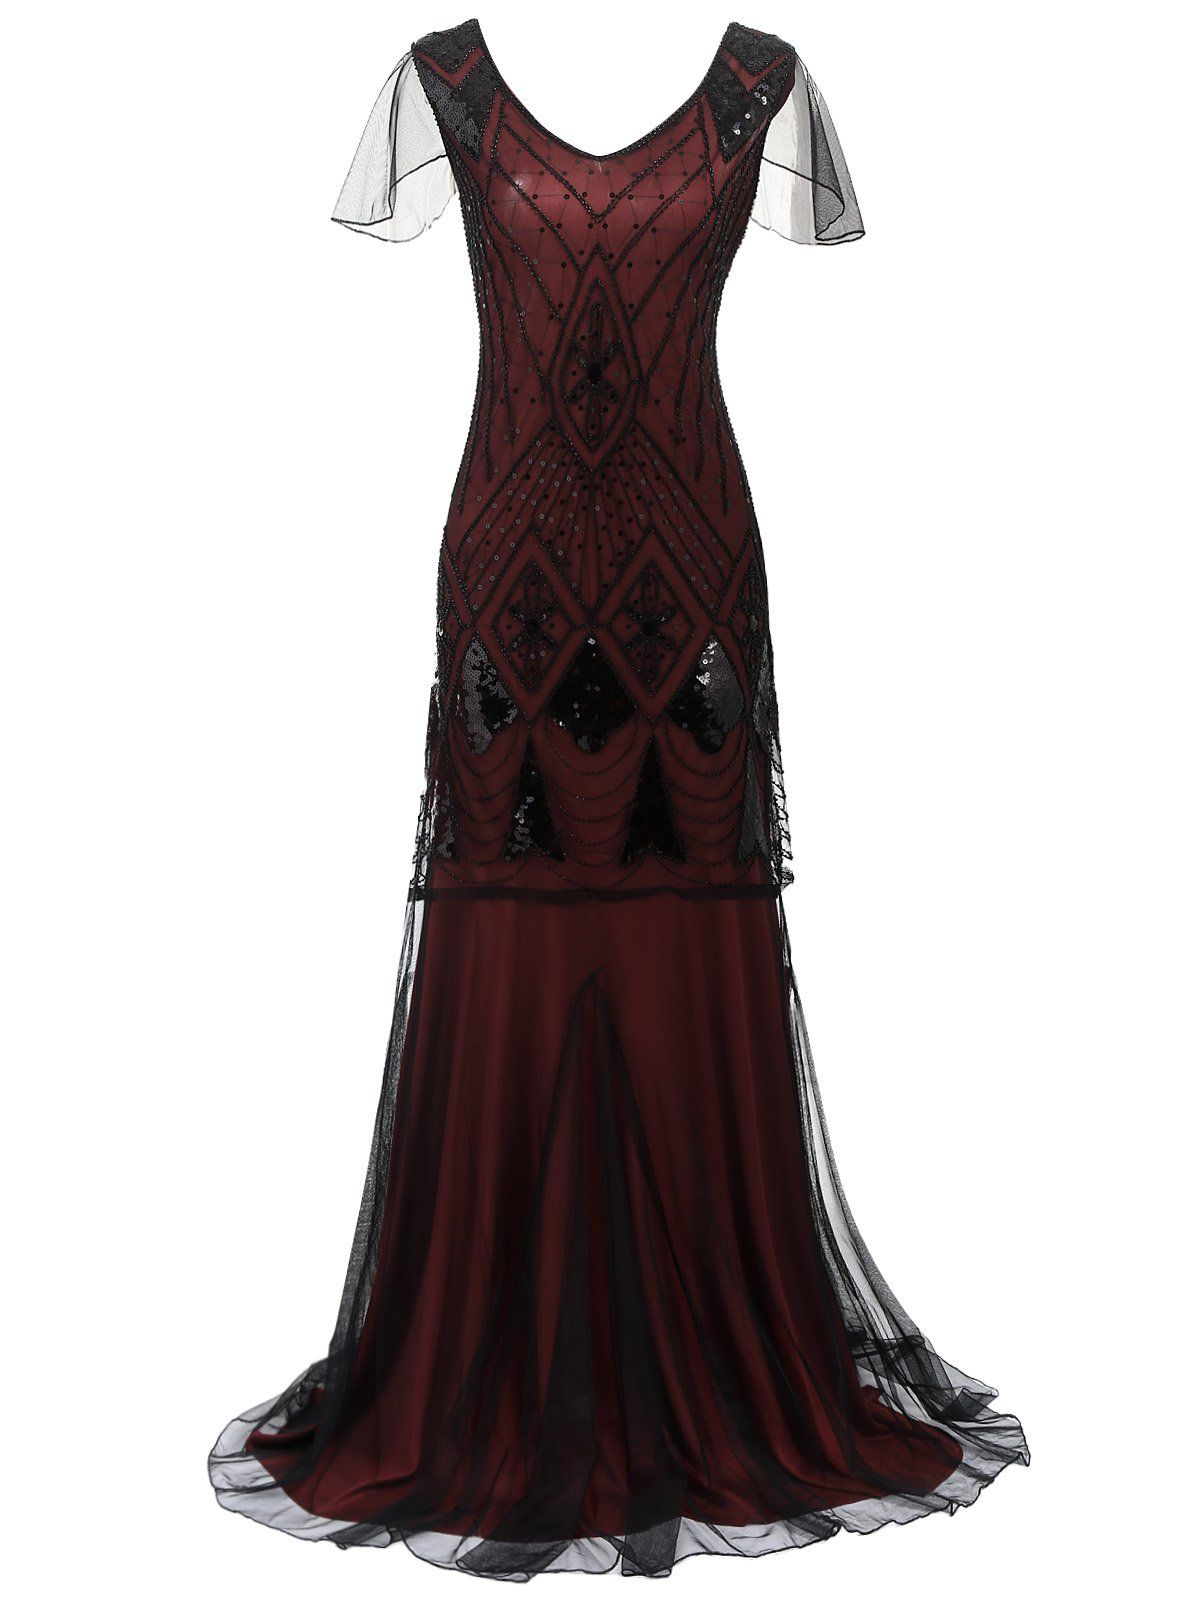 1920s Cap Sleeve Sequin Evening Party Maxi Dress Great Gatsby Prom Dresses Themed Prom Dresses Great Gatsby Long Dresses [ 1600 x 1200 Pixel ]